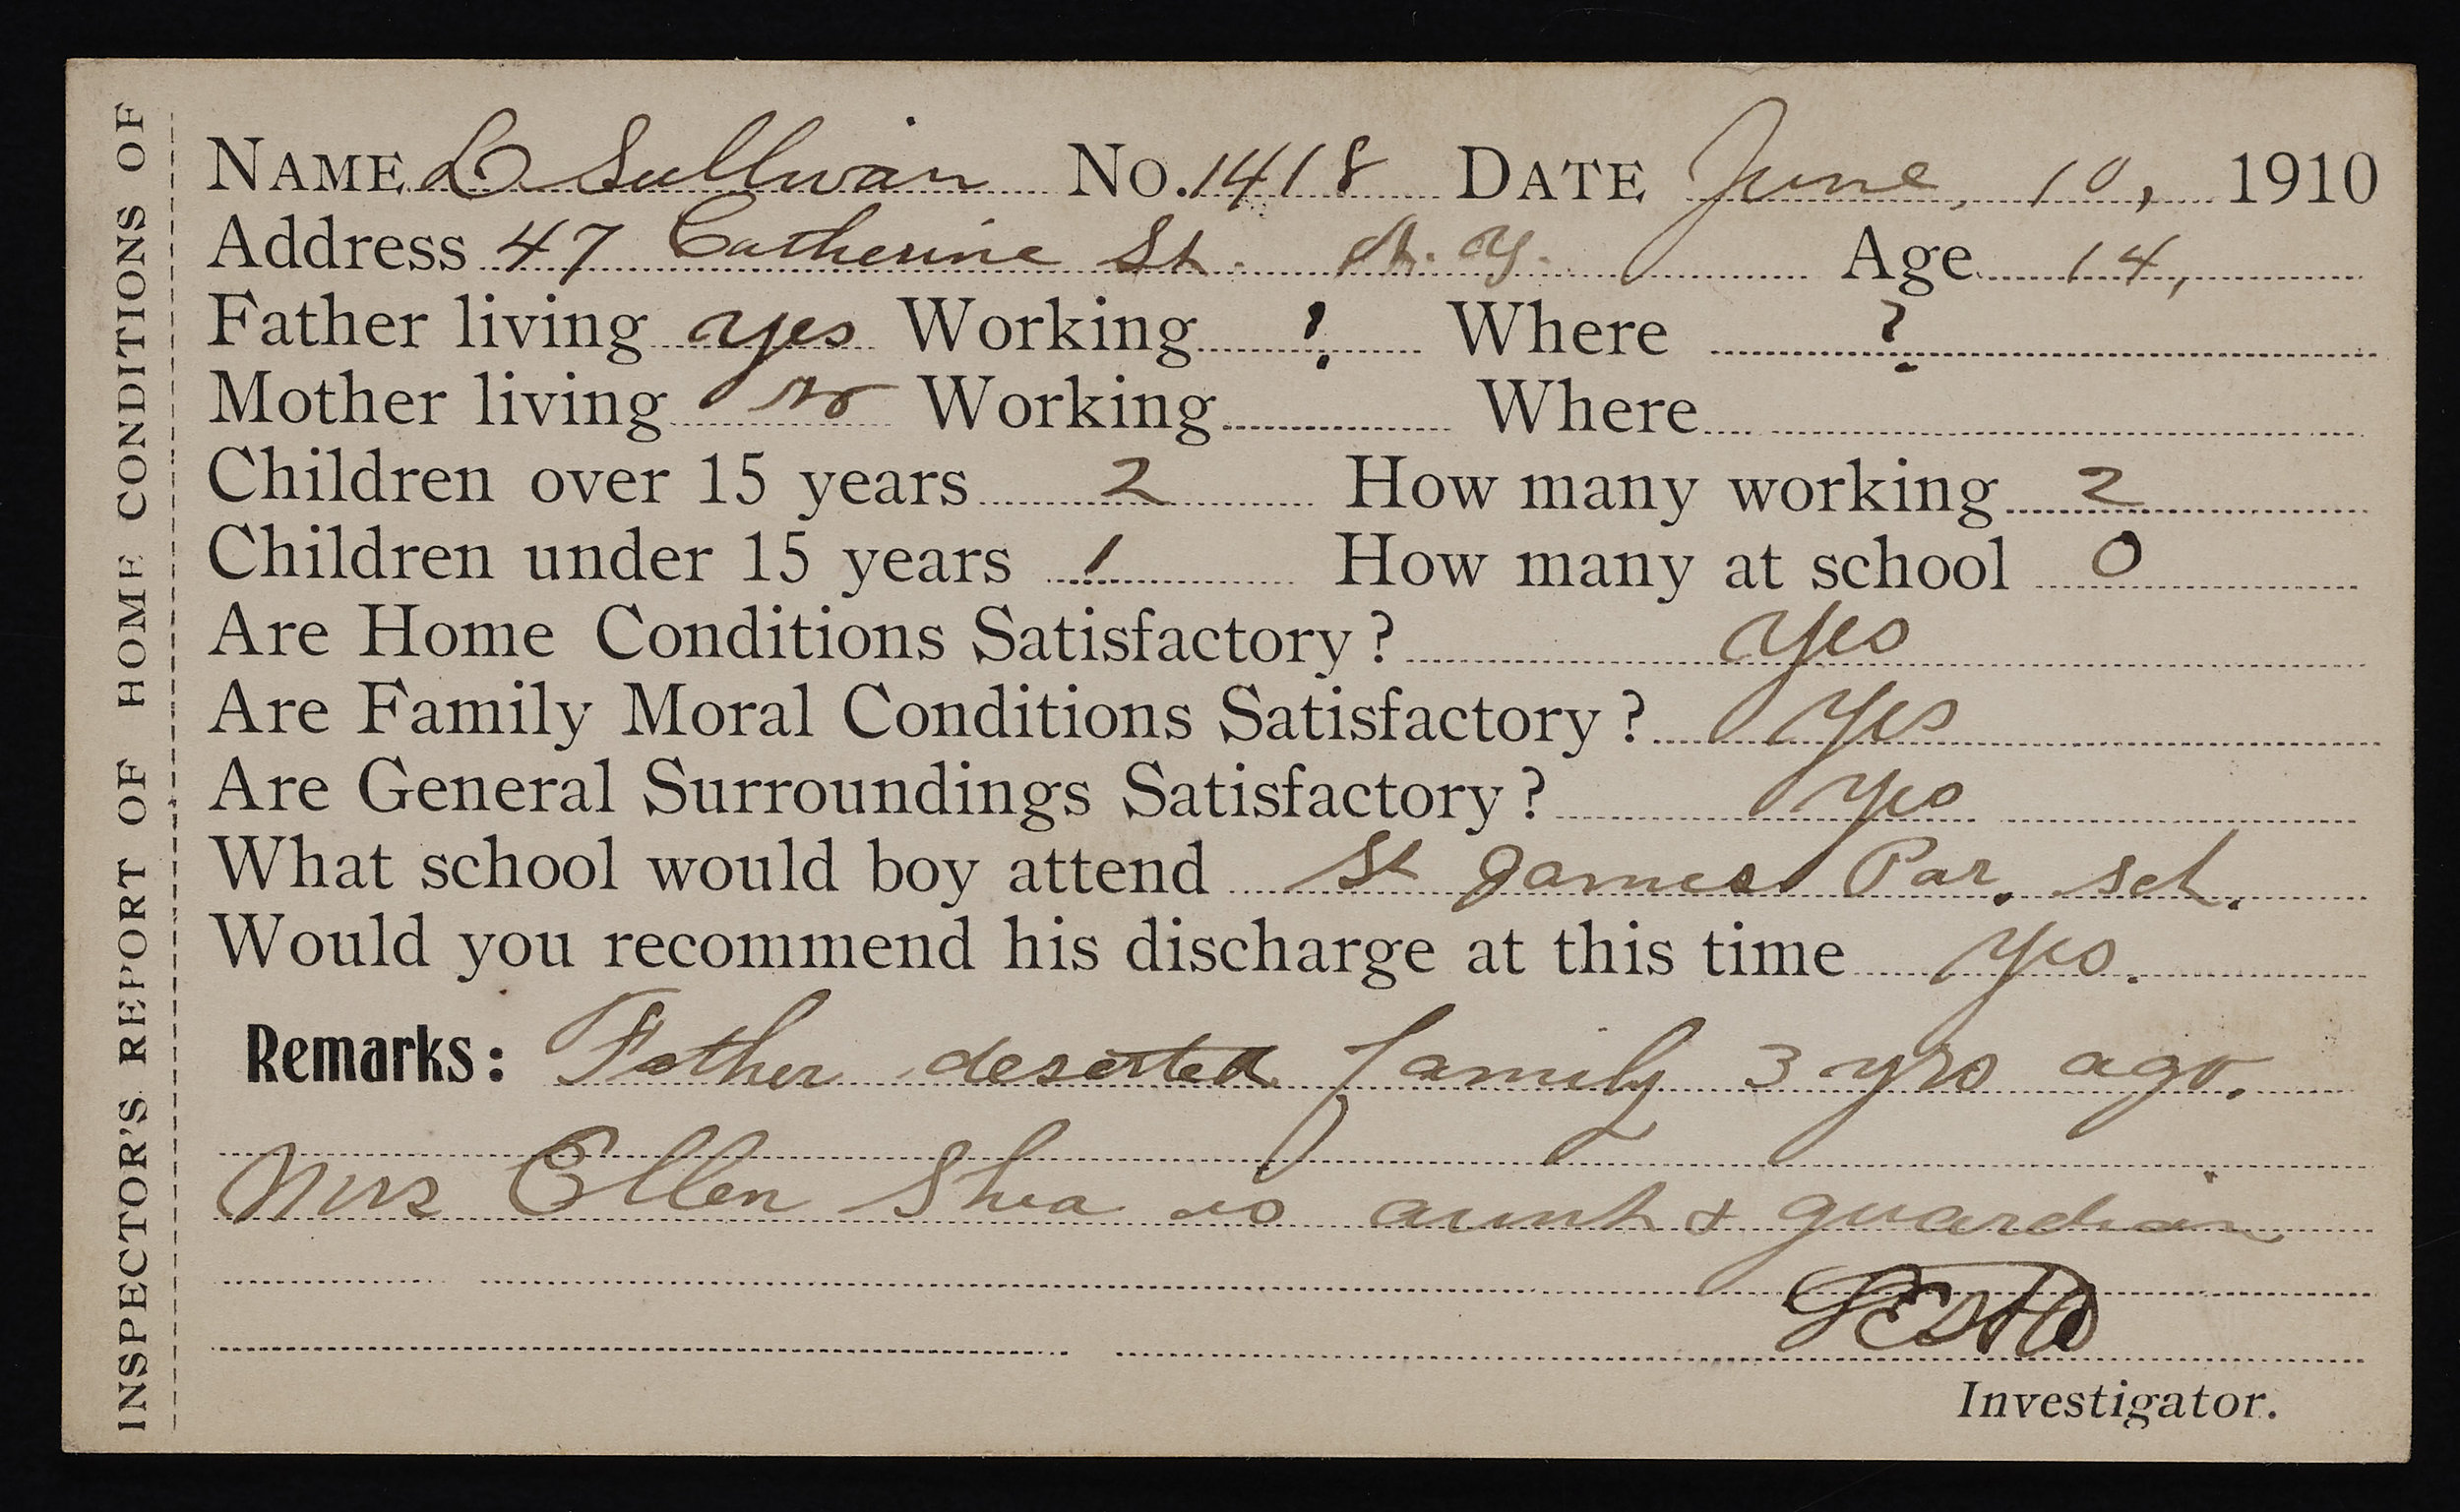 Inspector's report of Home Conditions, 1910. Records of the Brooklyn Disciplinary Training School for Boys, NYC Municipal Archives.